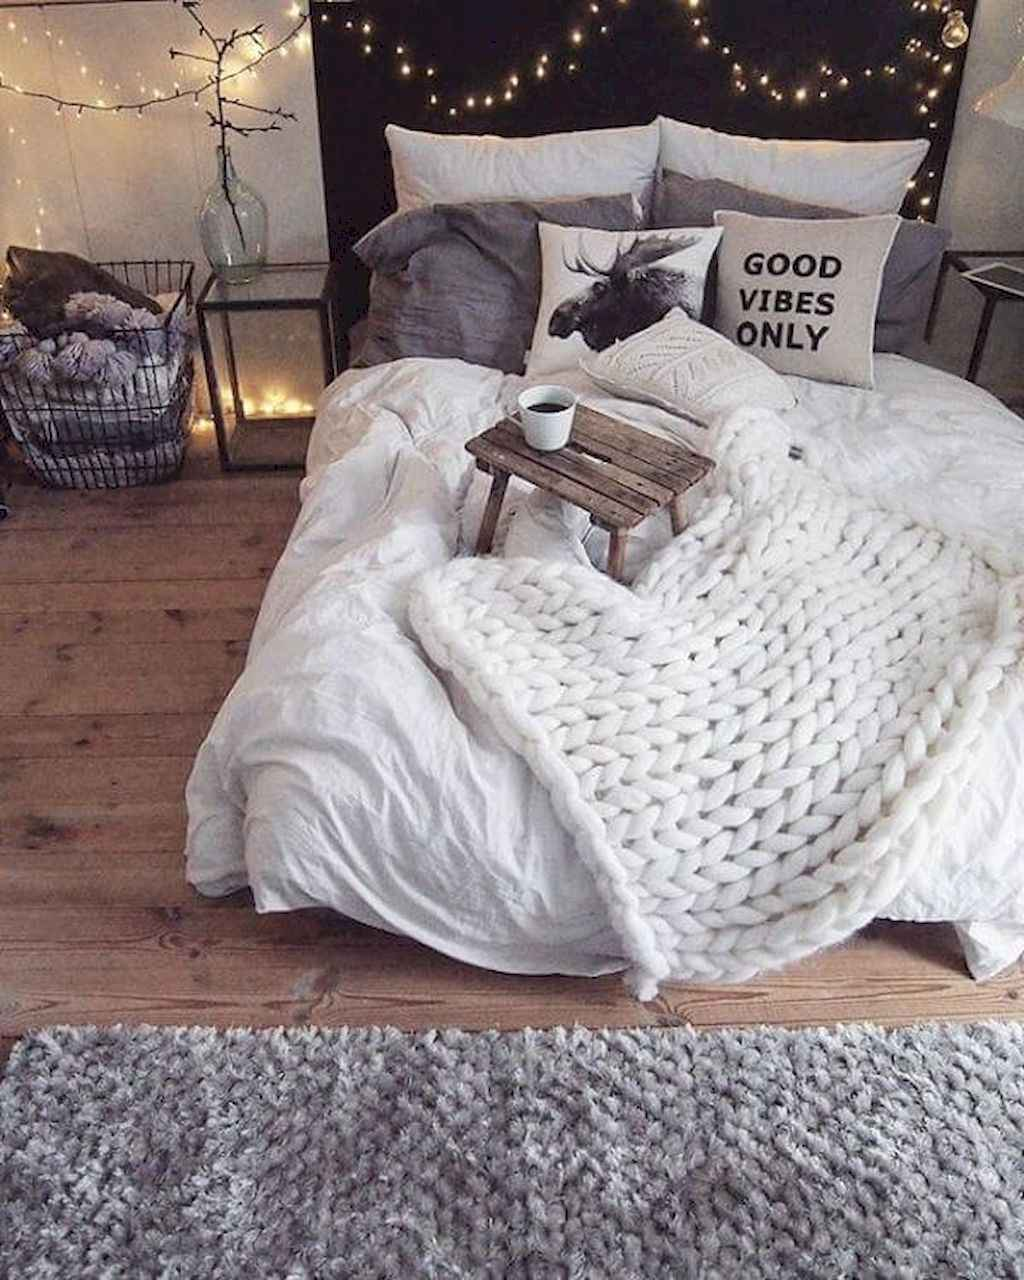 Amazing small first apartment decorating ideas (11)